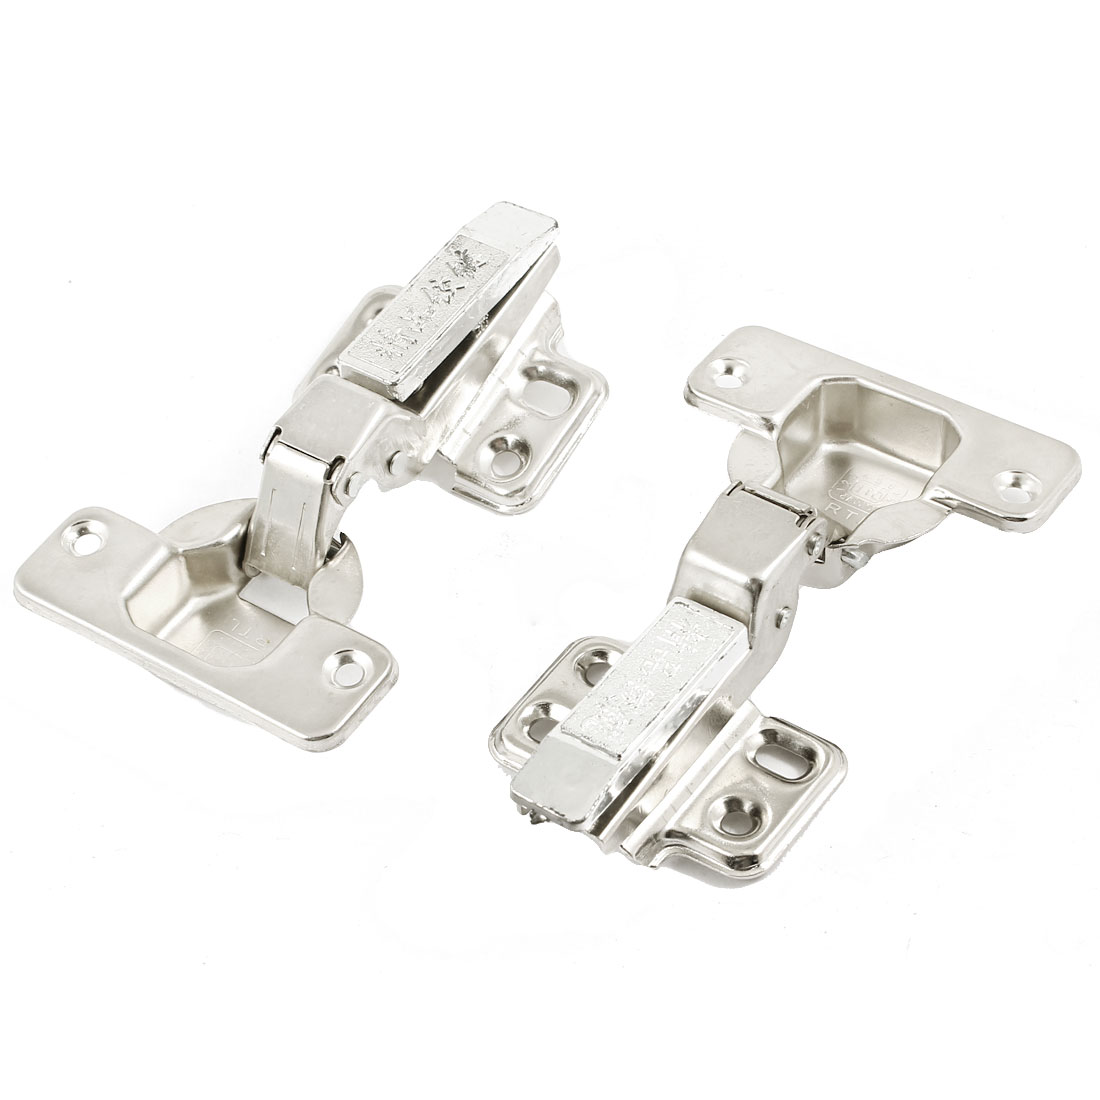 2 Pcs Stainless Steel Concealed Cabinet Cupboard Door Sliding Hinges 3.7""